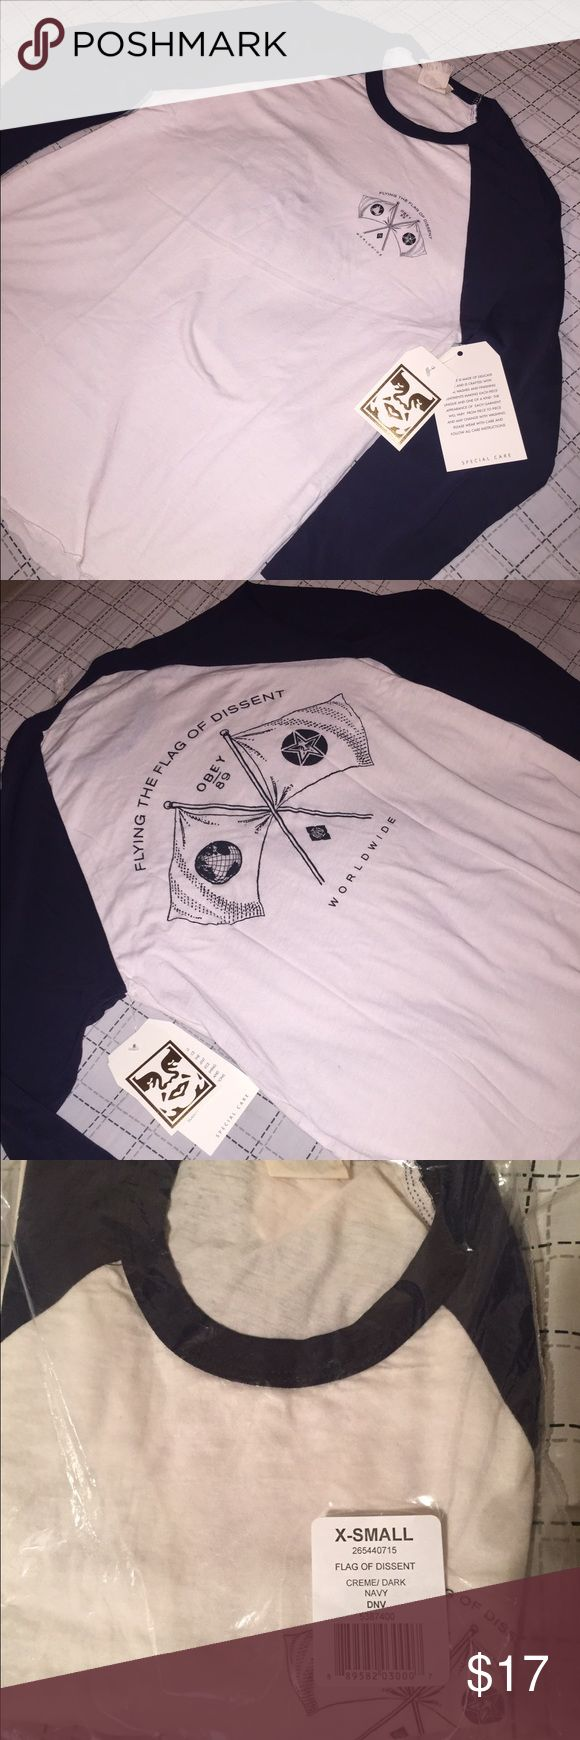 """Obey women's baseball tee Obey Women's """"Flag of Dissent"""" baseball tee. Brand new with tags. Size: XS Obey Tops Tees - Long Sleeve"""